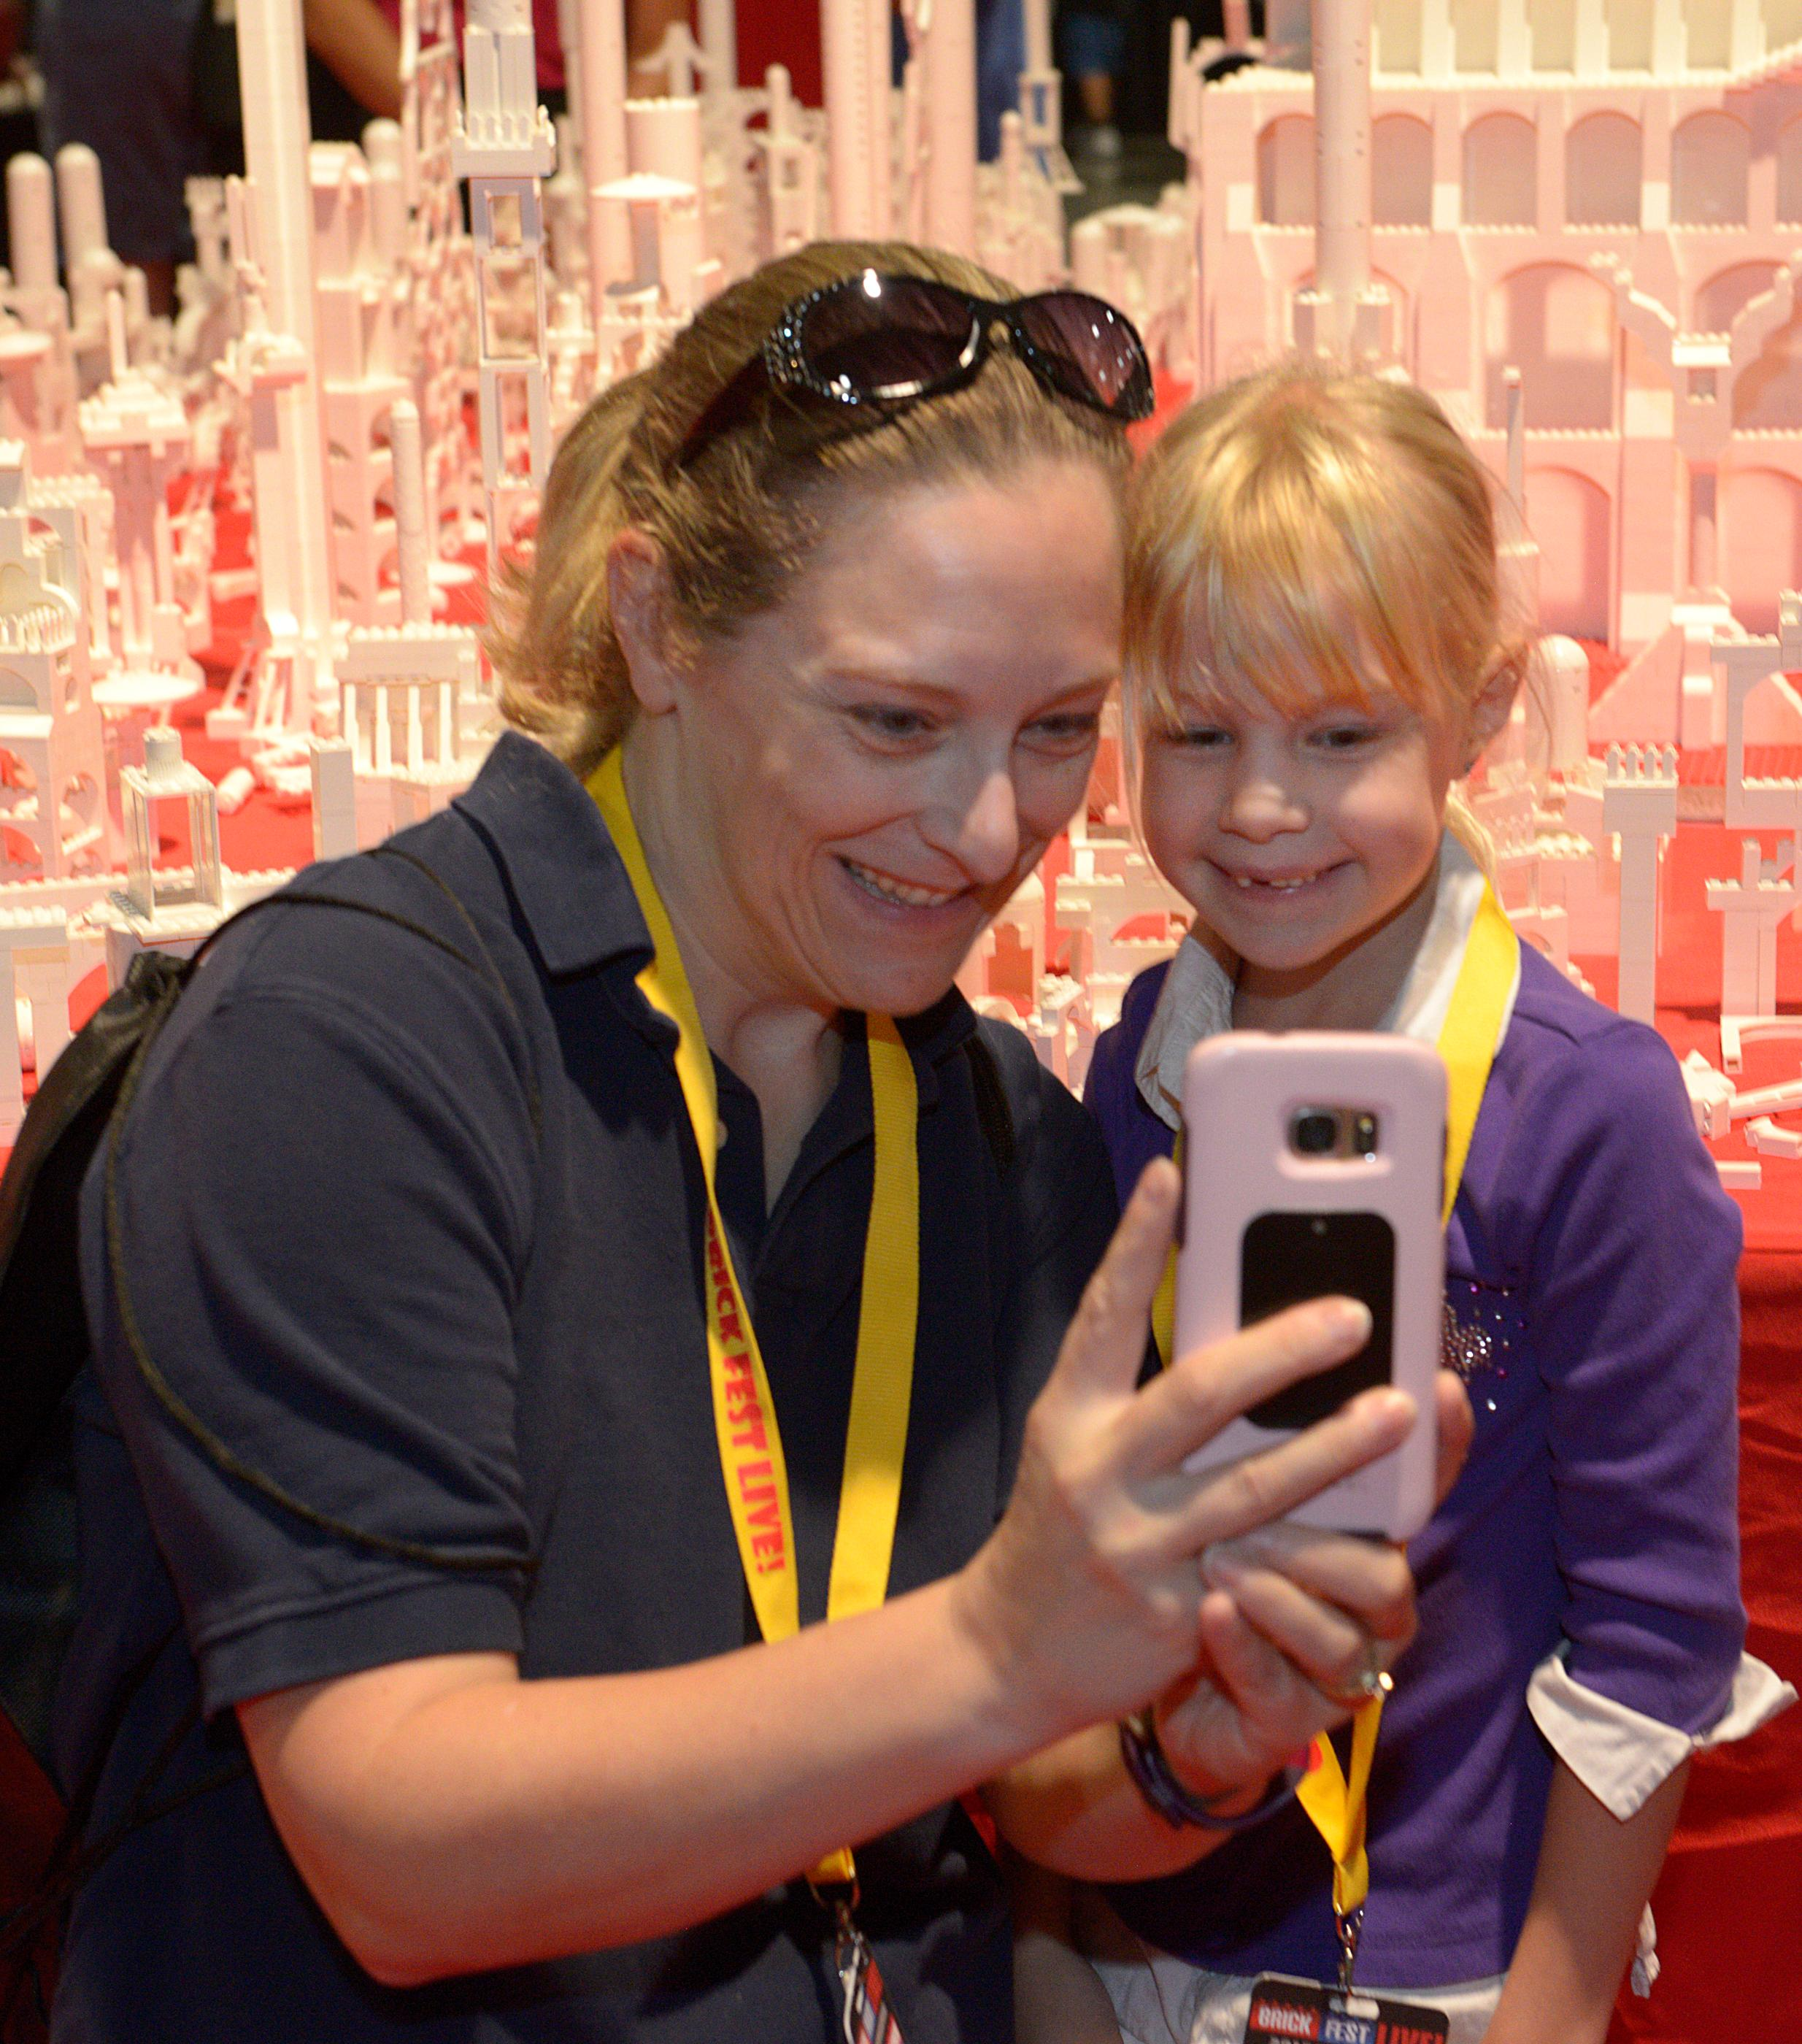 Selfies are the order-of-the-day during the Brick Fest Live Lego Fan Experience at the Las Vegas Convention Center, September 9, 2017. [Glenn Pinkerton/Las Vegas News Bureau]